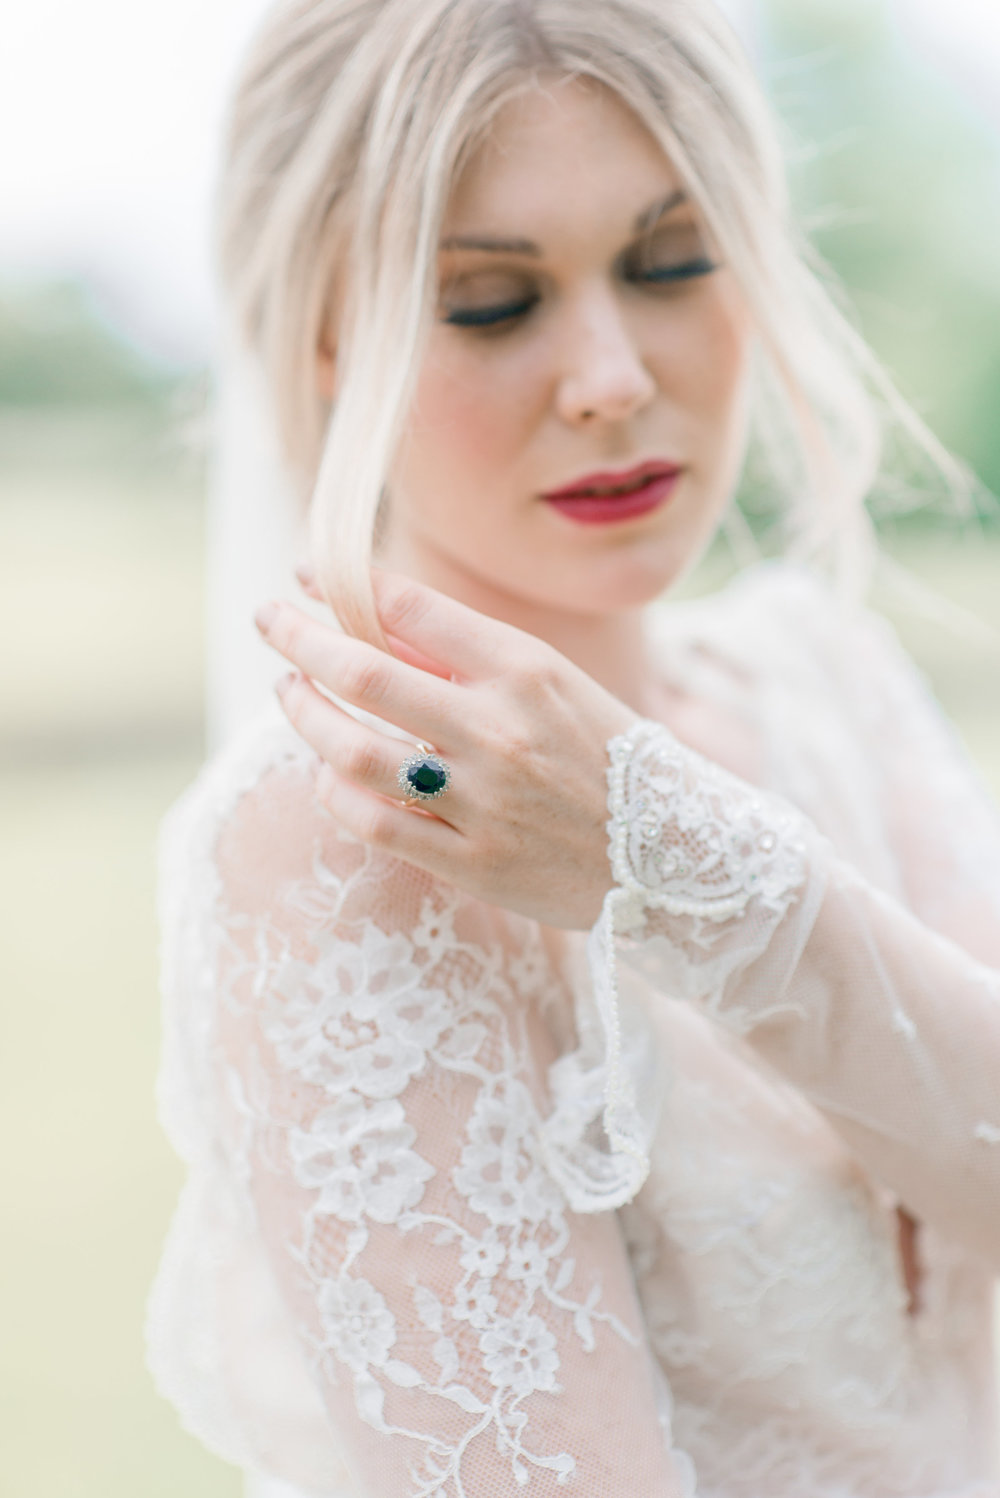 The Timeless Stylist-Elegant and Romantic Wedding Styling-Red Lipstick Wedding Makeup